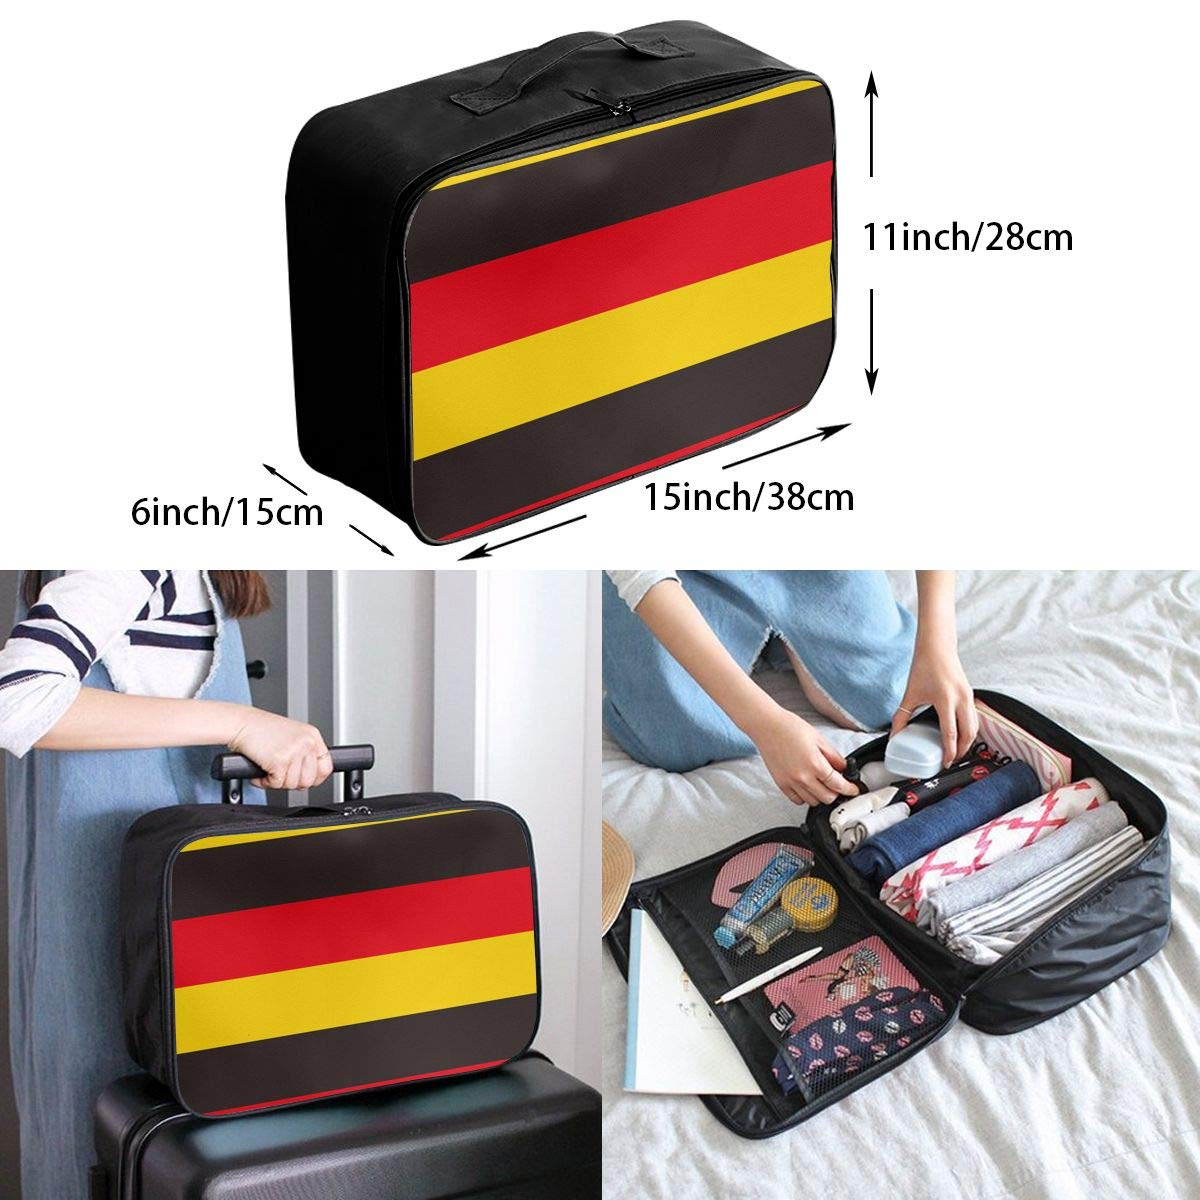 Germany Flag Strapes Travel Duffel Bag Casual Large Capacity Portable Luggage Bag Suitcase Storage Bag Luggage Packing Tote Bag Weekend Trip